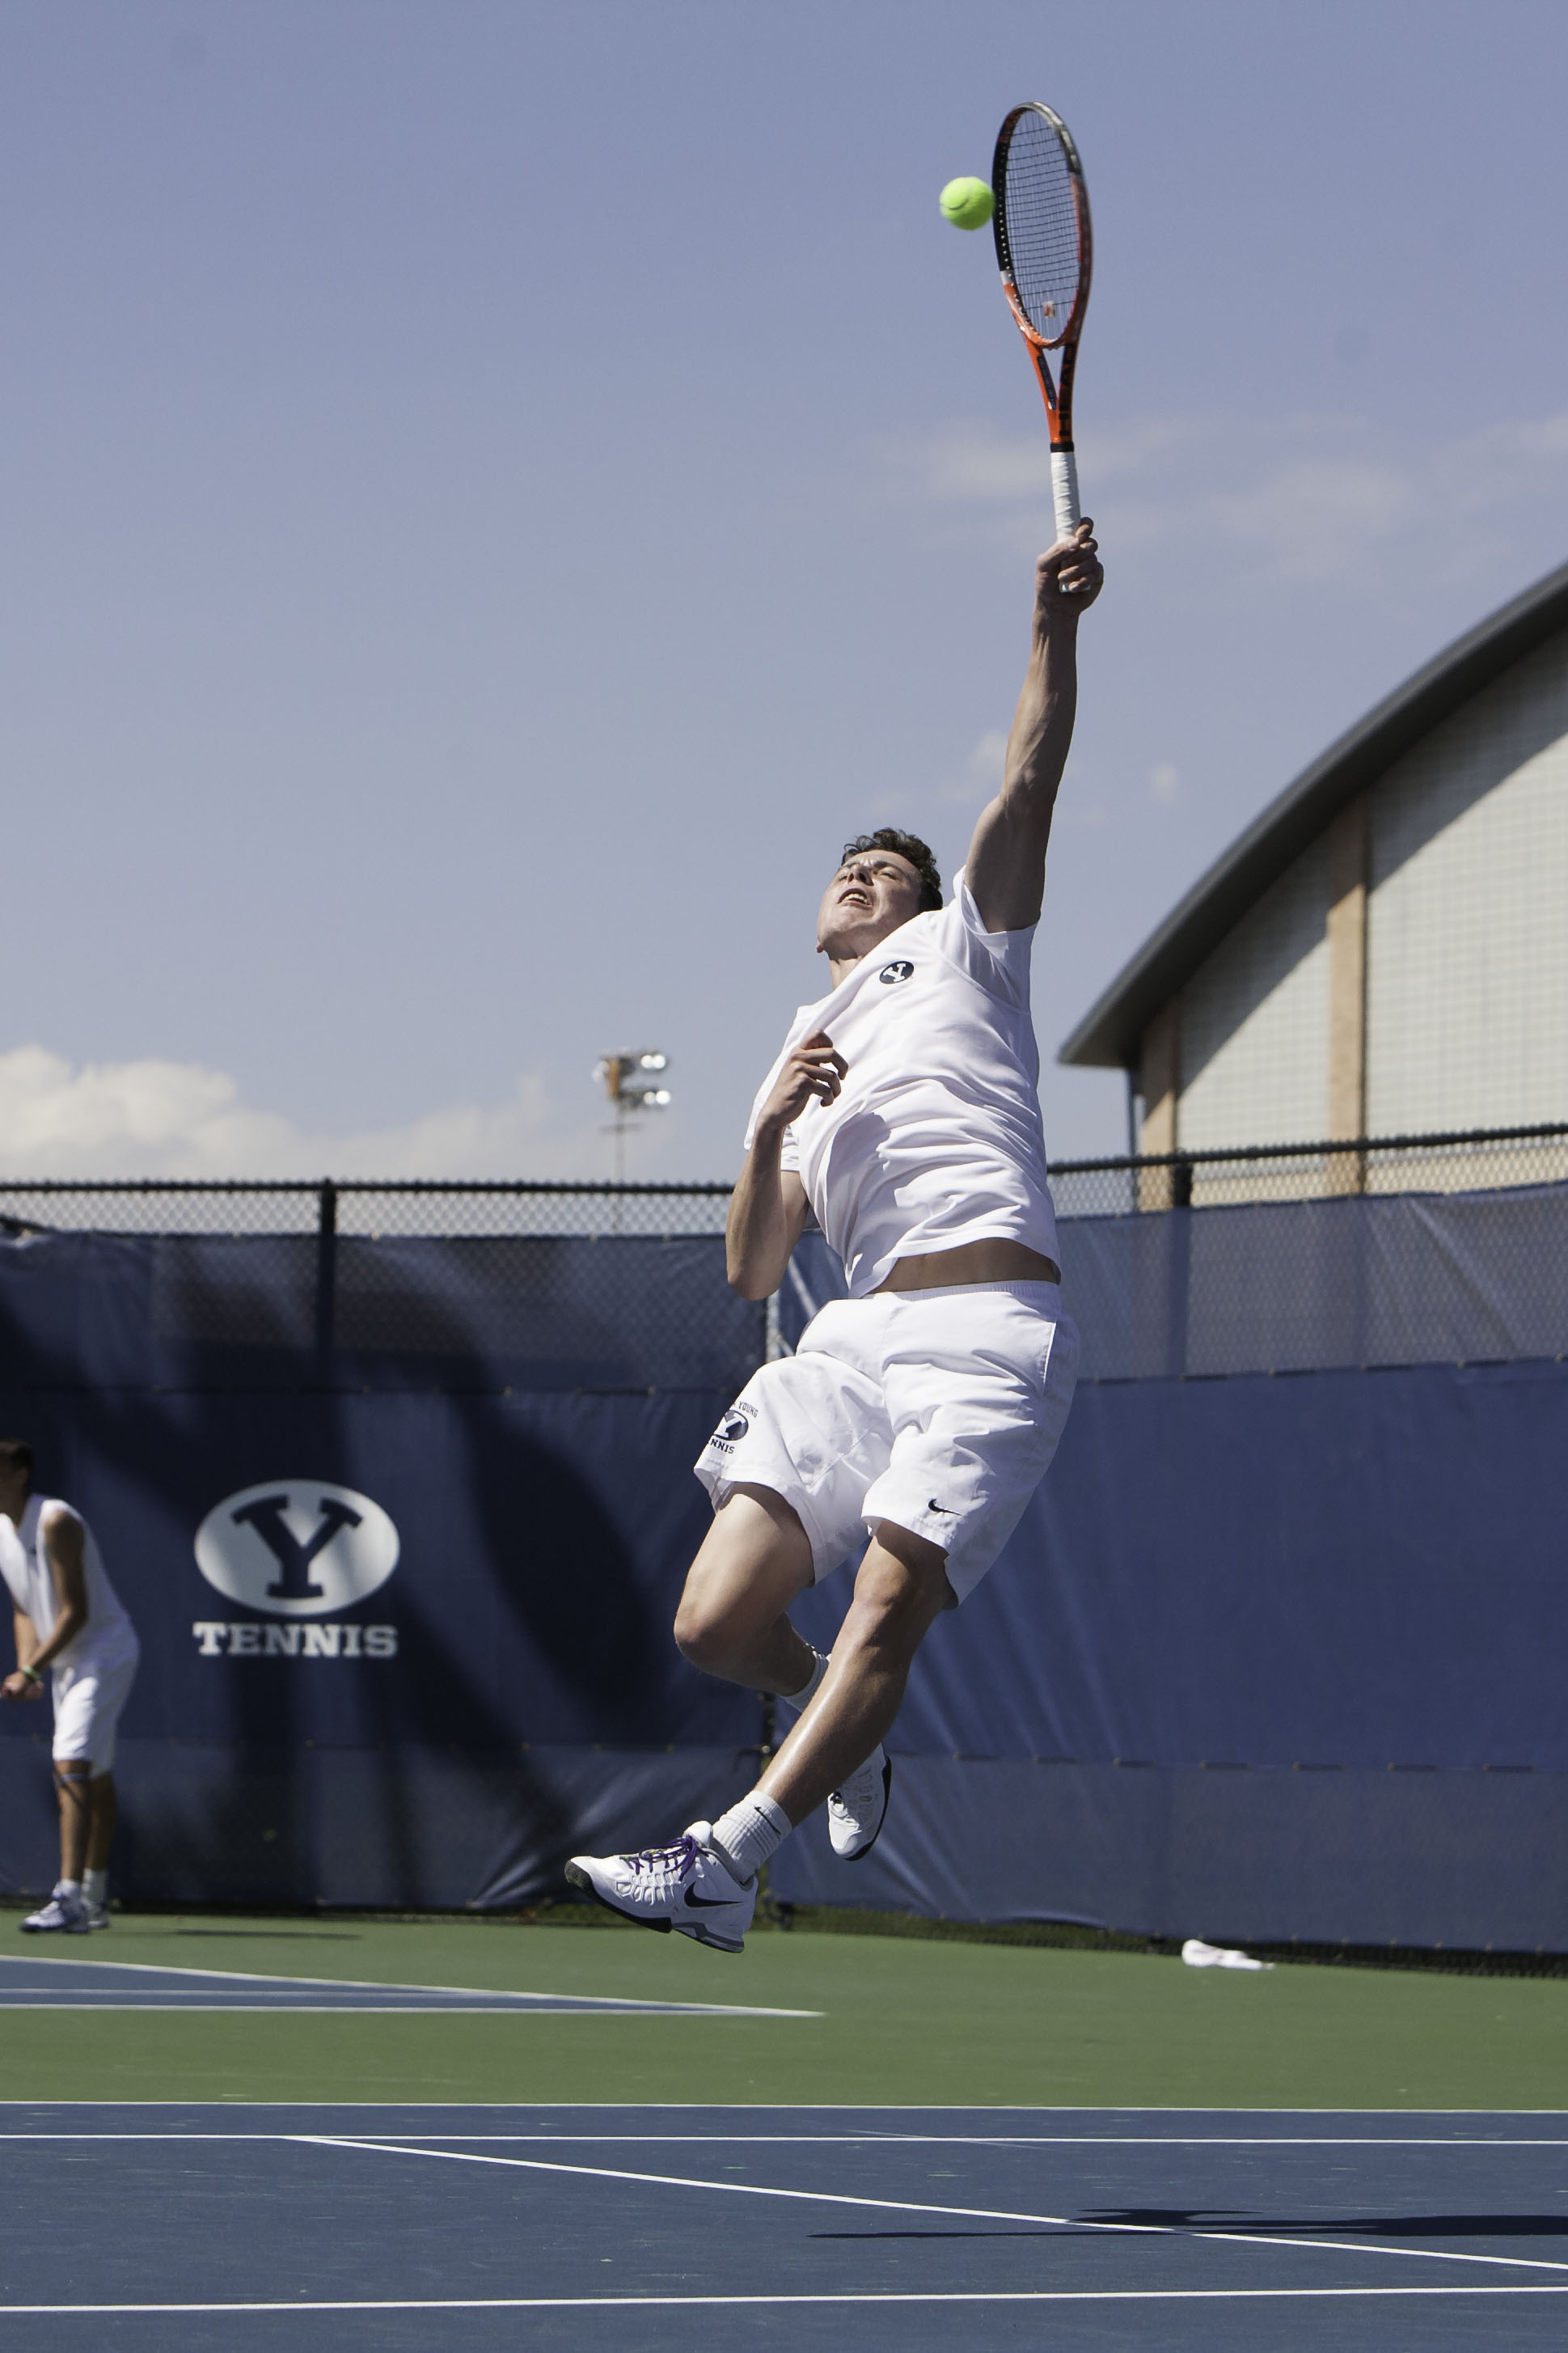 BYU's Francis Sargeant jumps for an overhead shot in Saturday's match against Saint Mary's College.